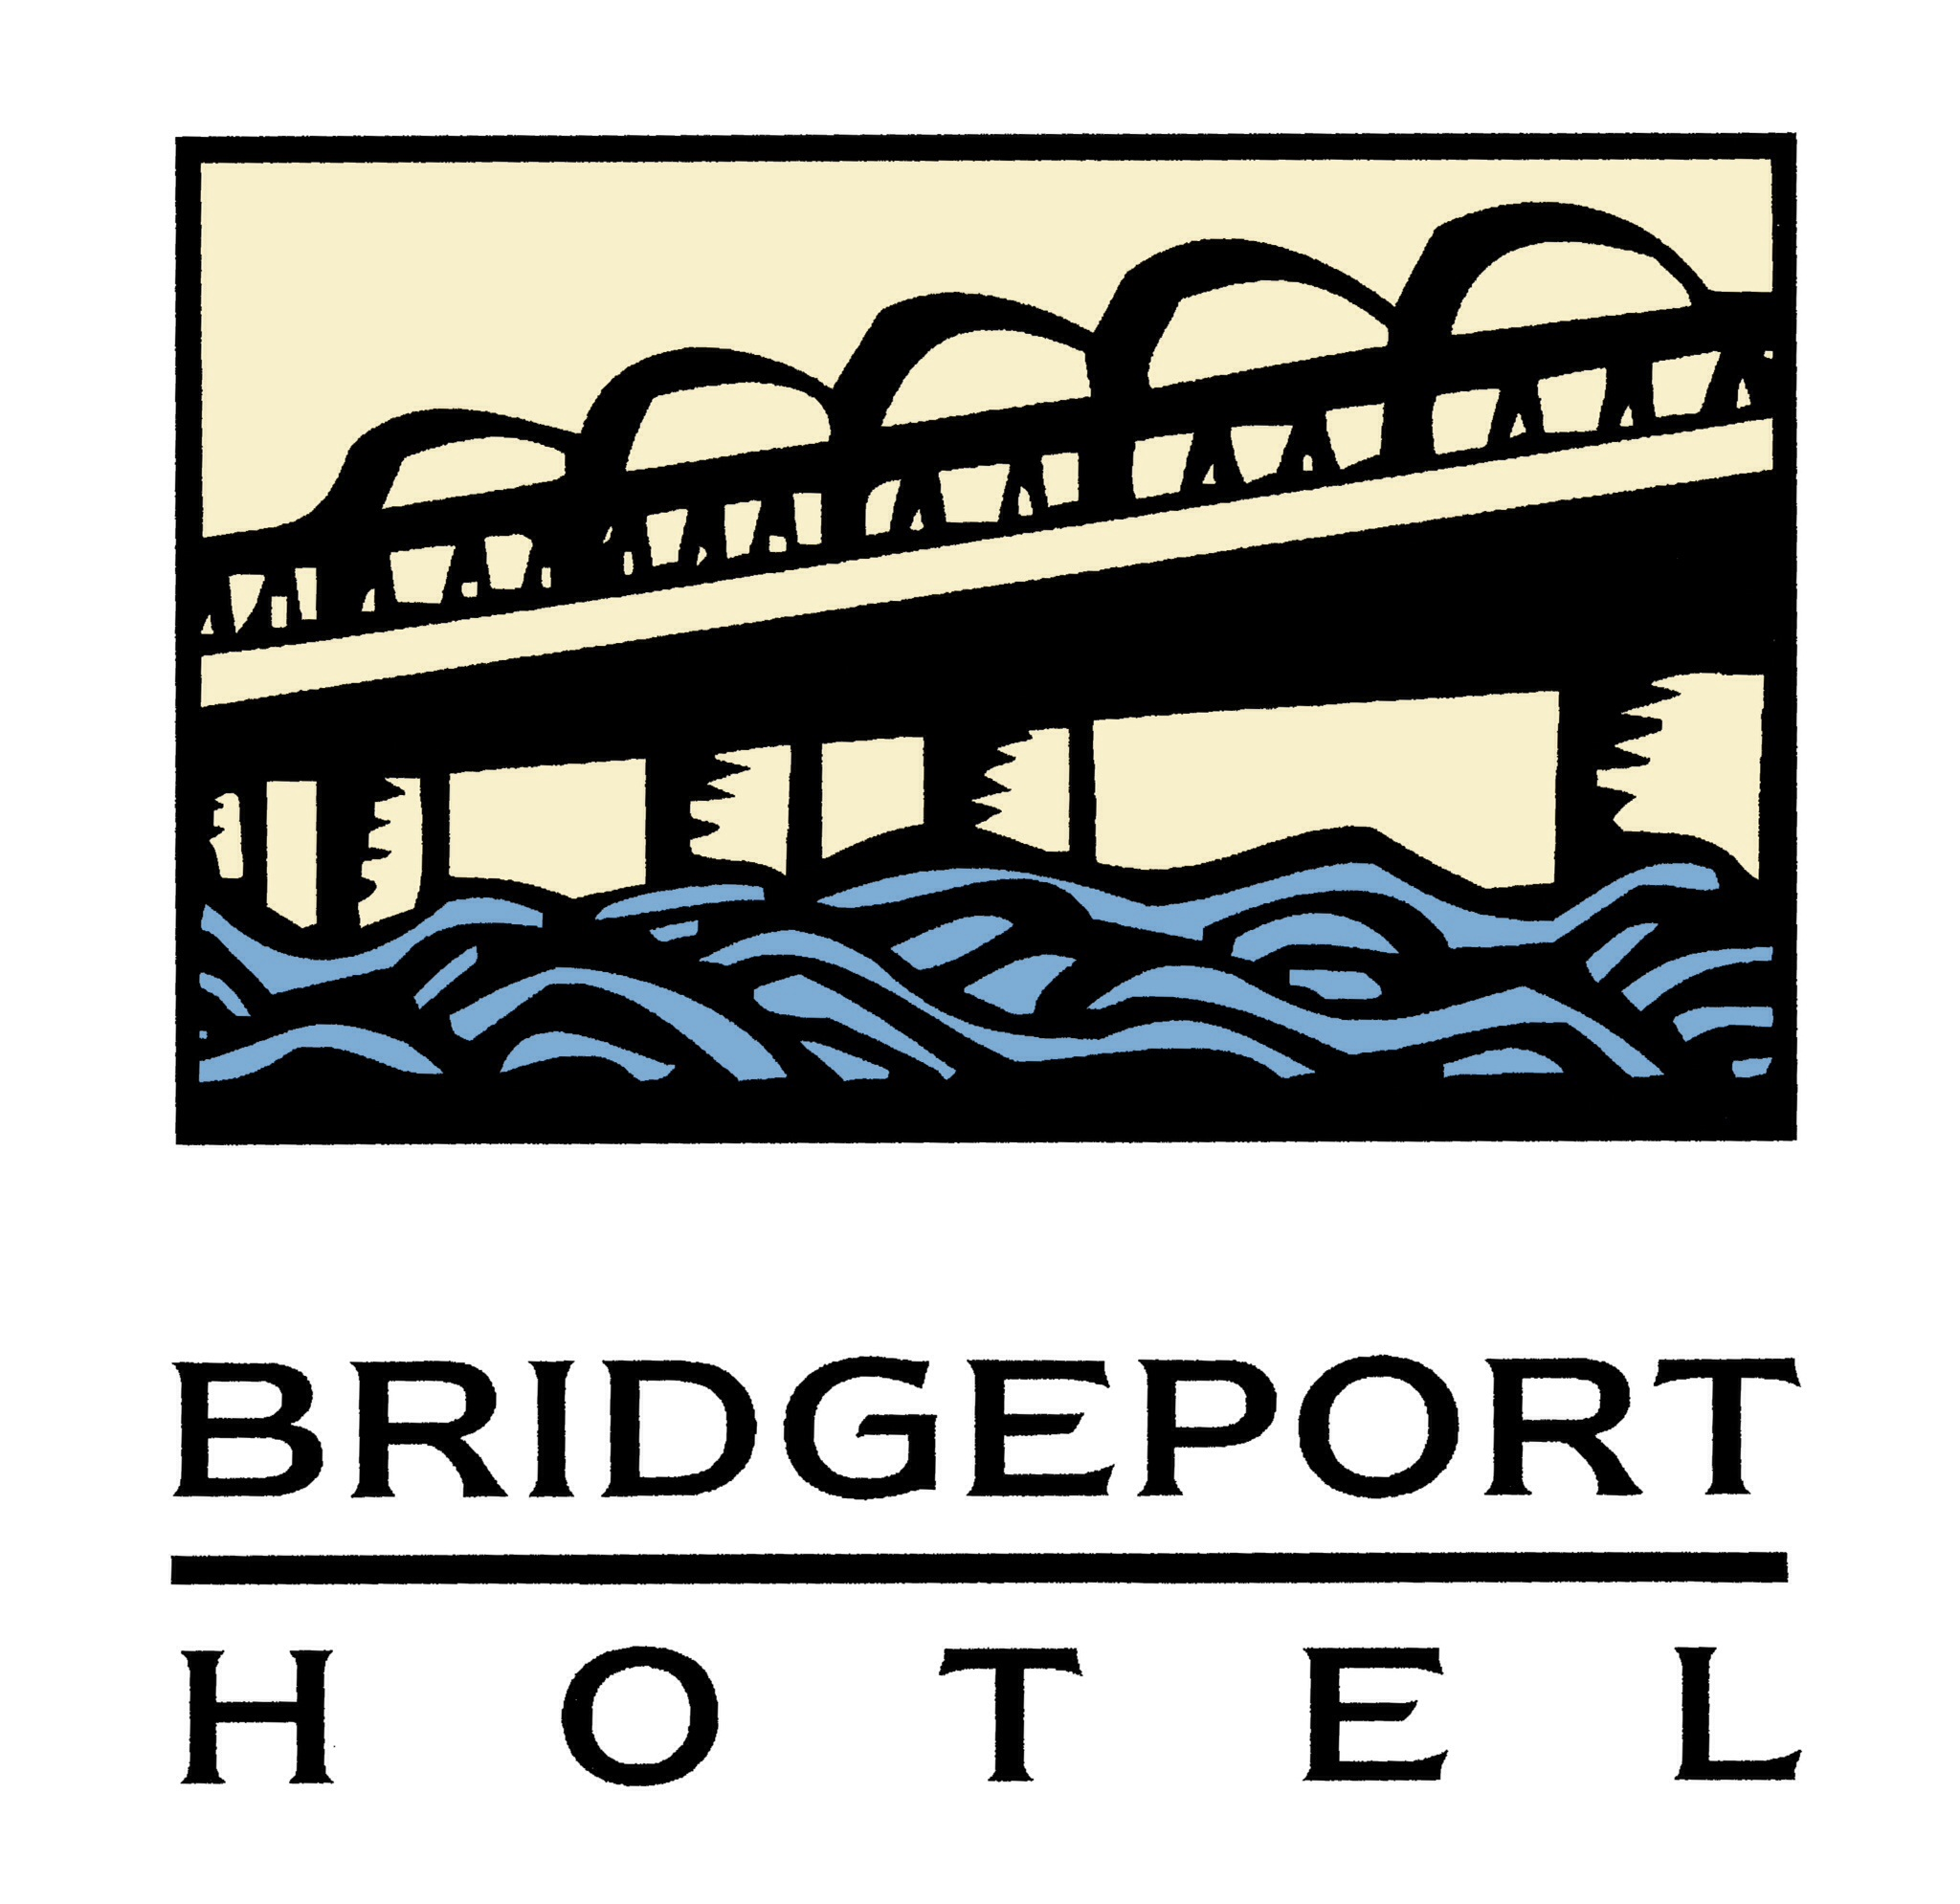 Bridgeport Hotel - Surfers Gold Coast